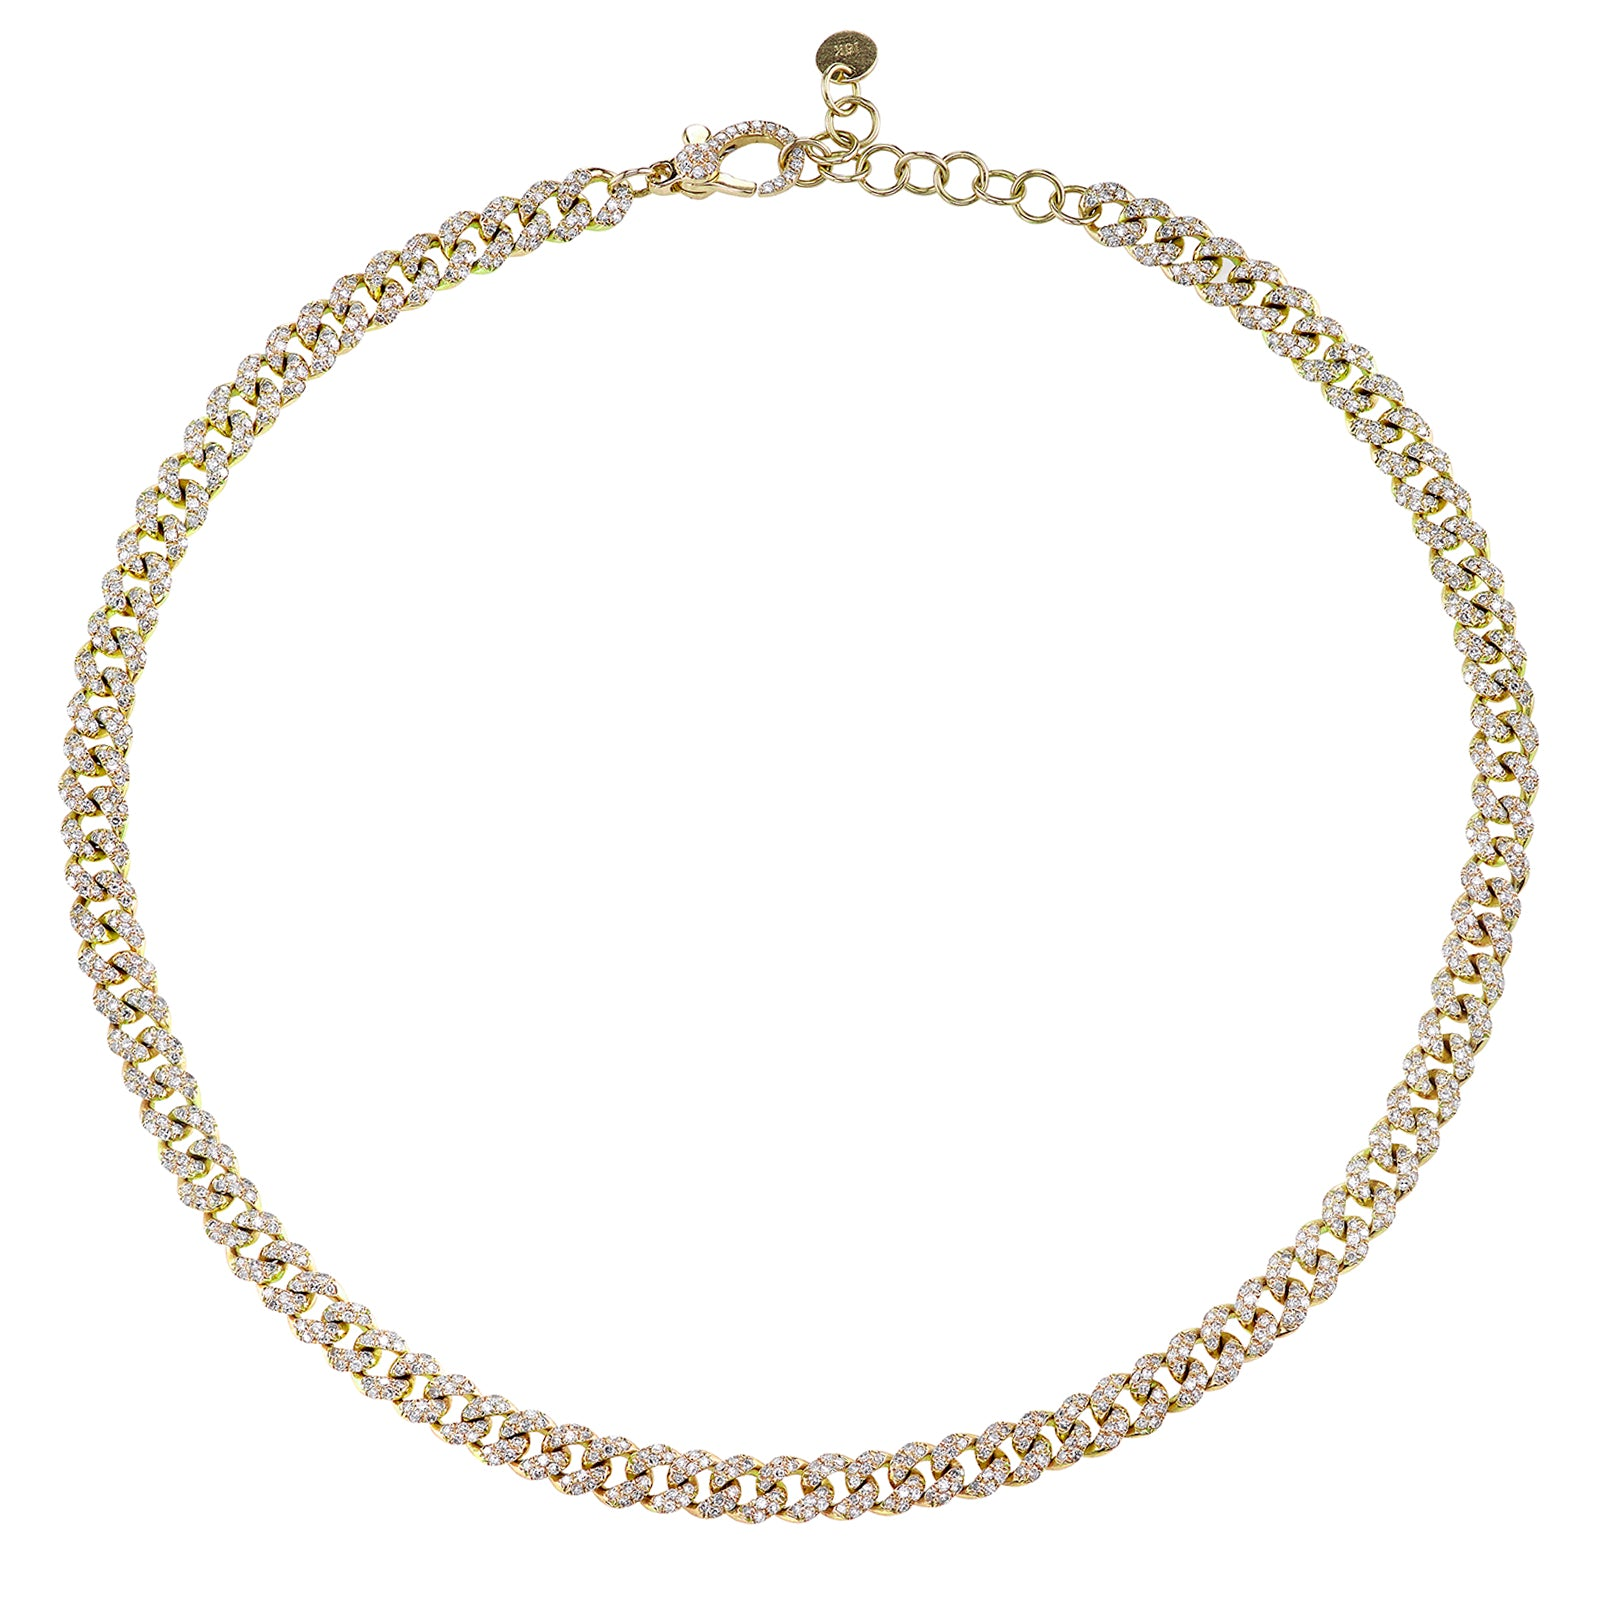 Shay Mini Pave Diamond Link Choker - Necklaces - Broken English Jewelry